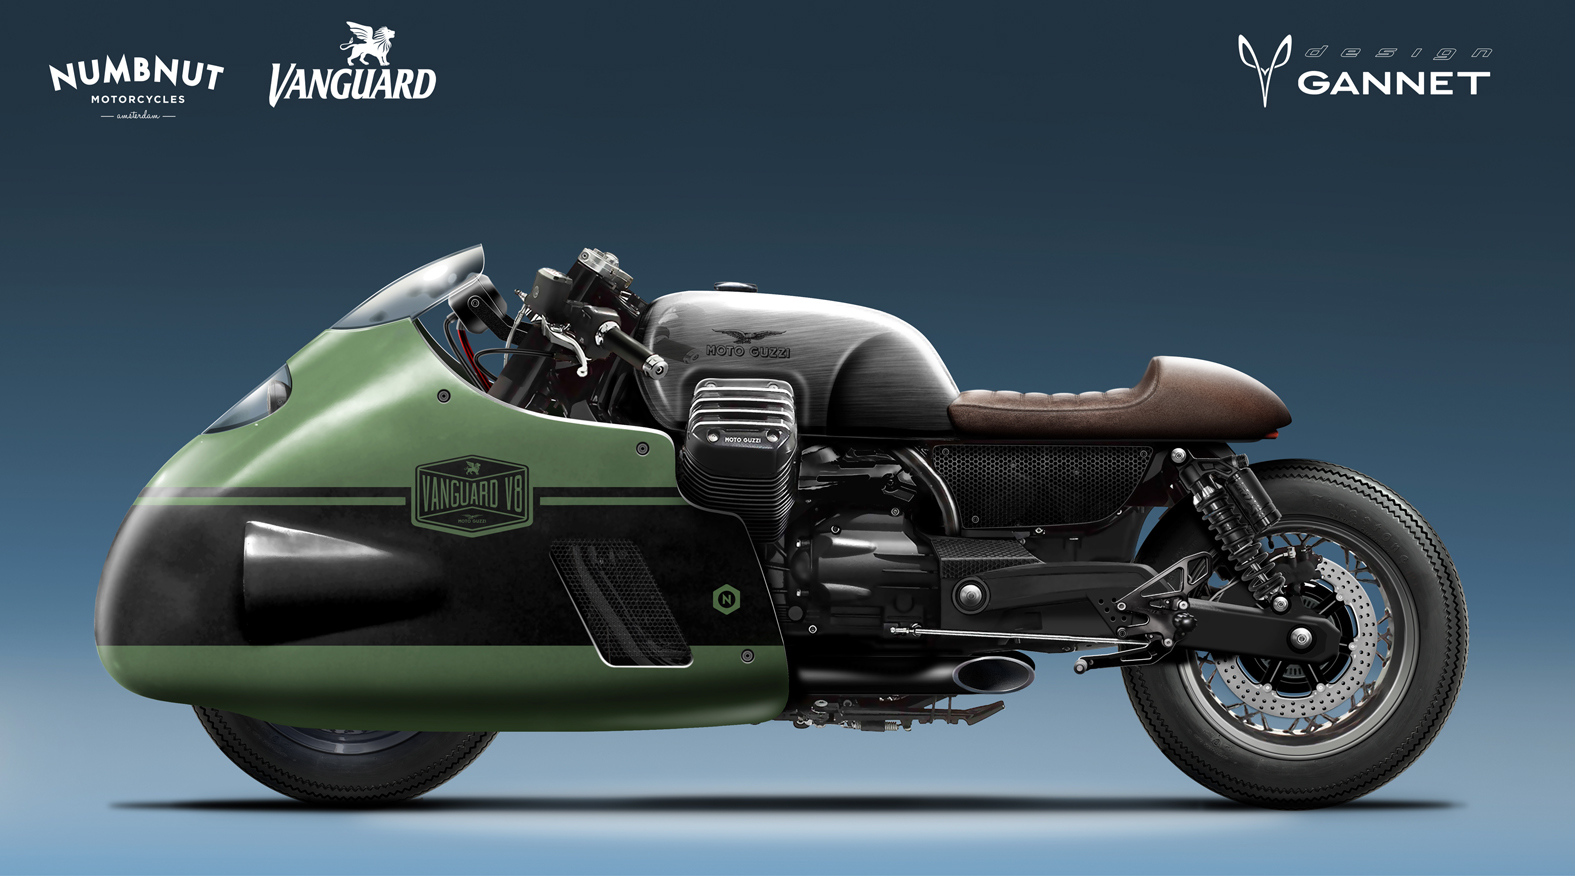 Guzzi-Vanguard small